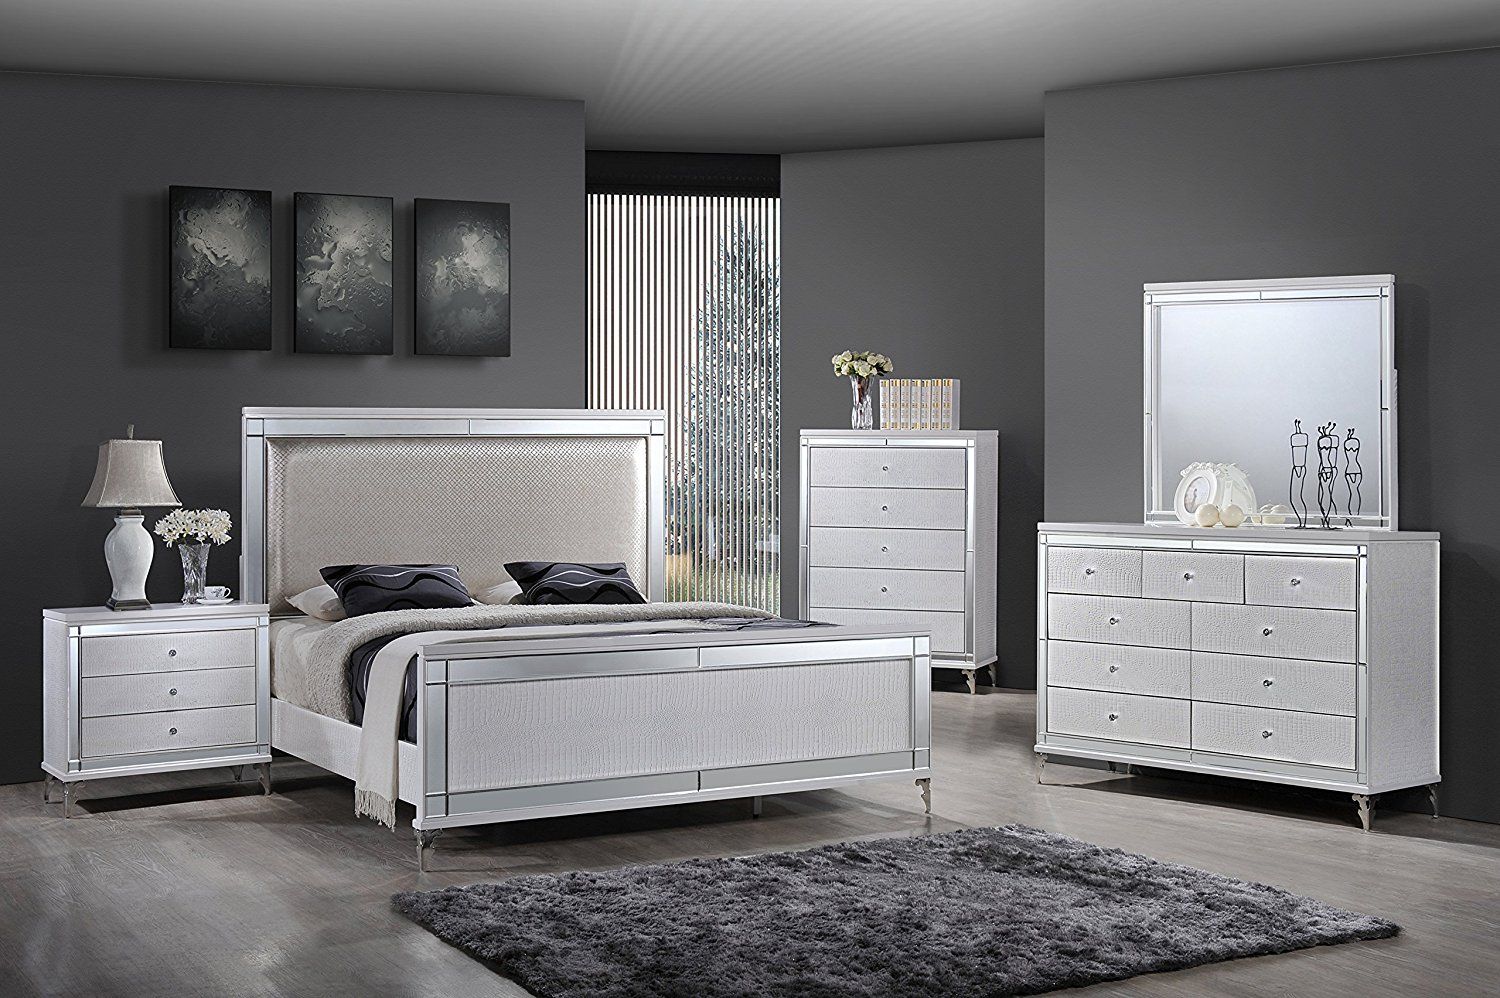 Mirrored Bedroom Furniture Sets Choice  Cool Ideas for Home